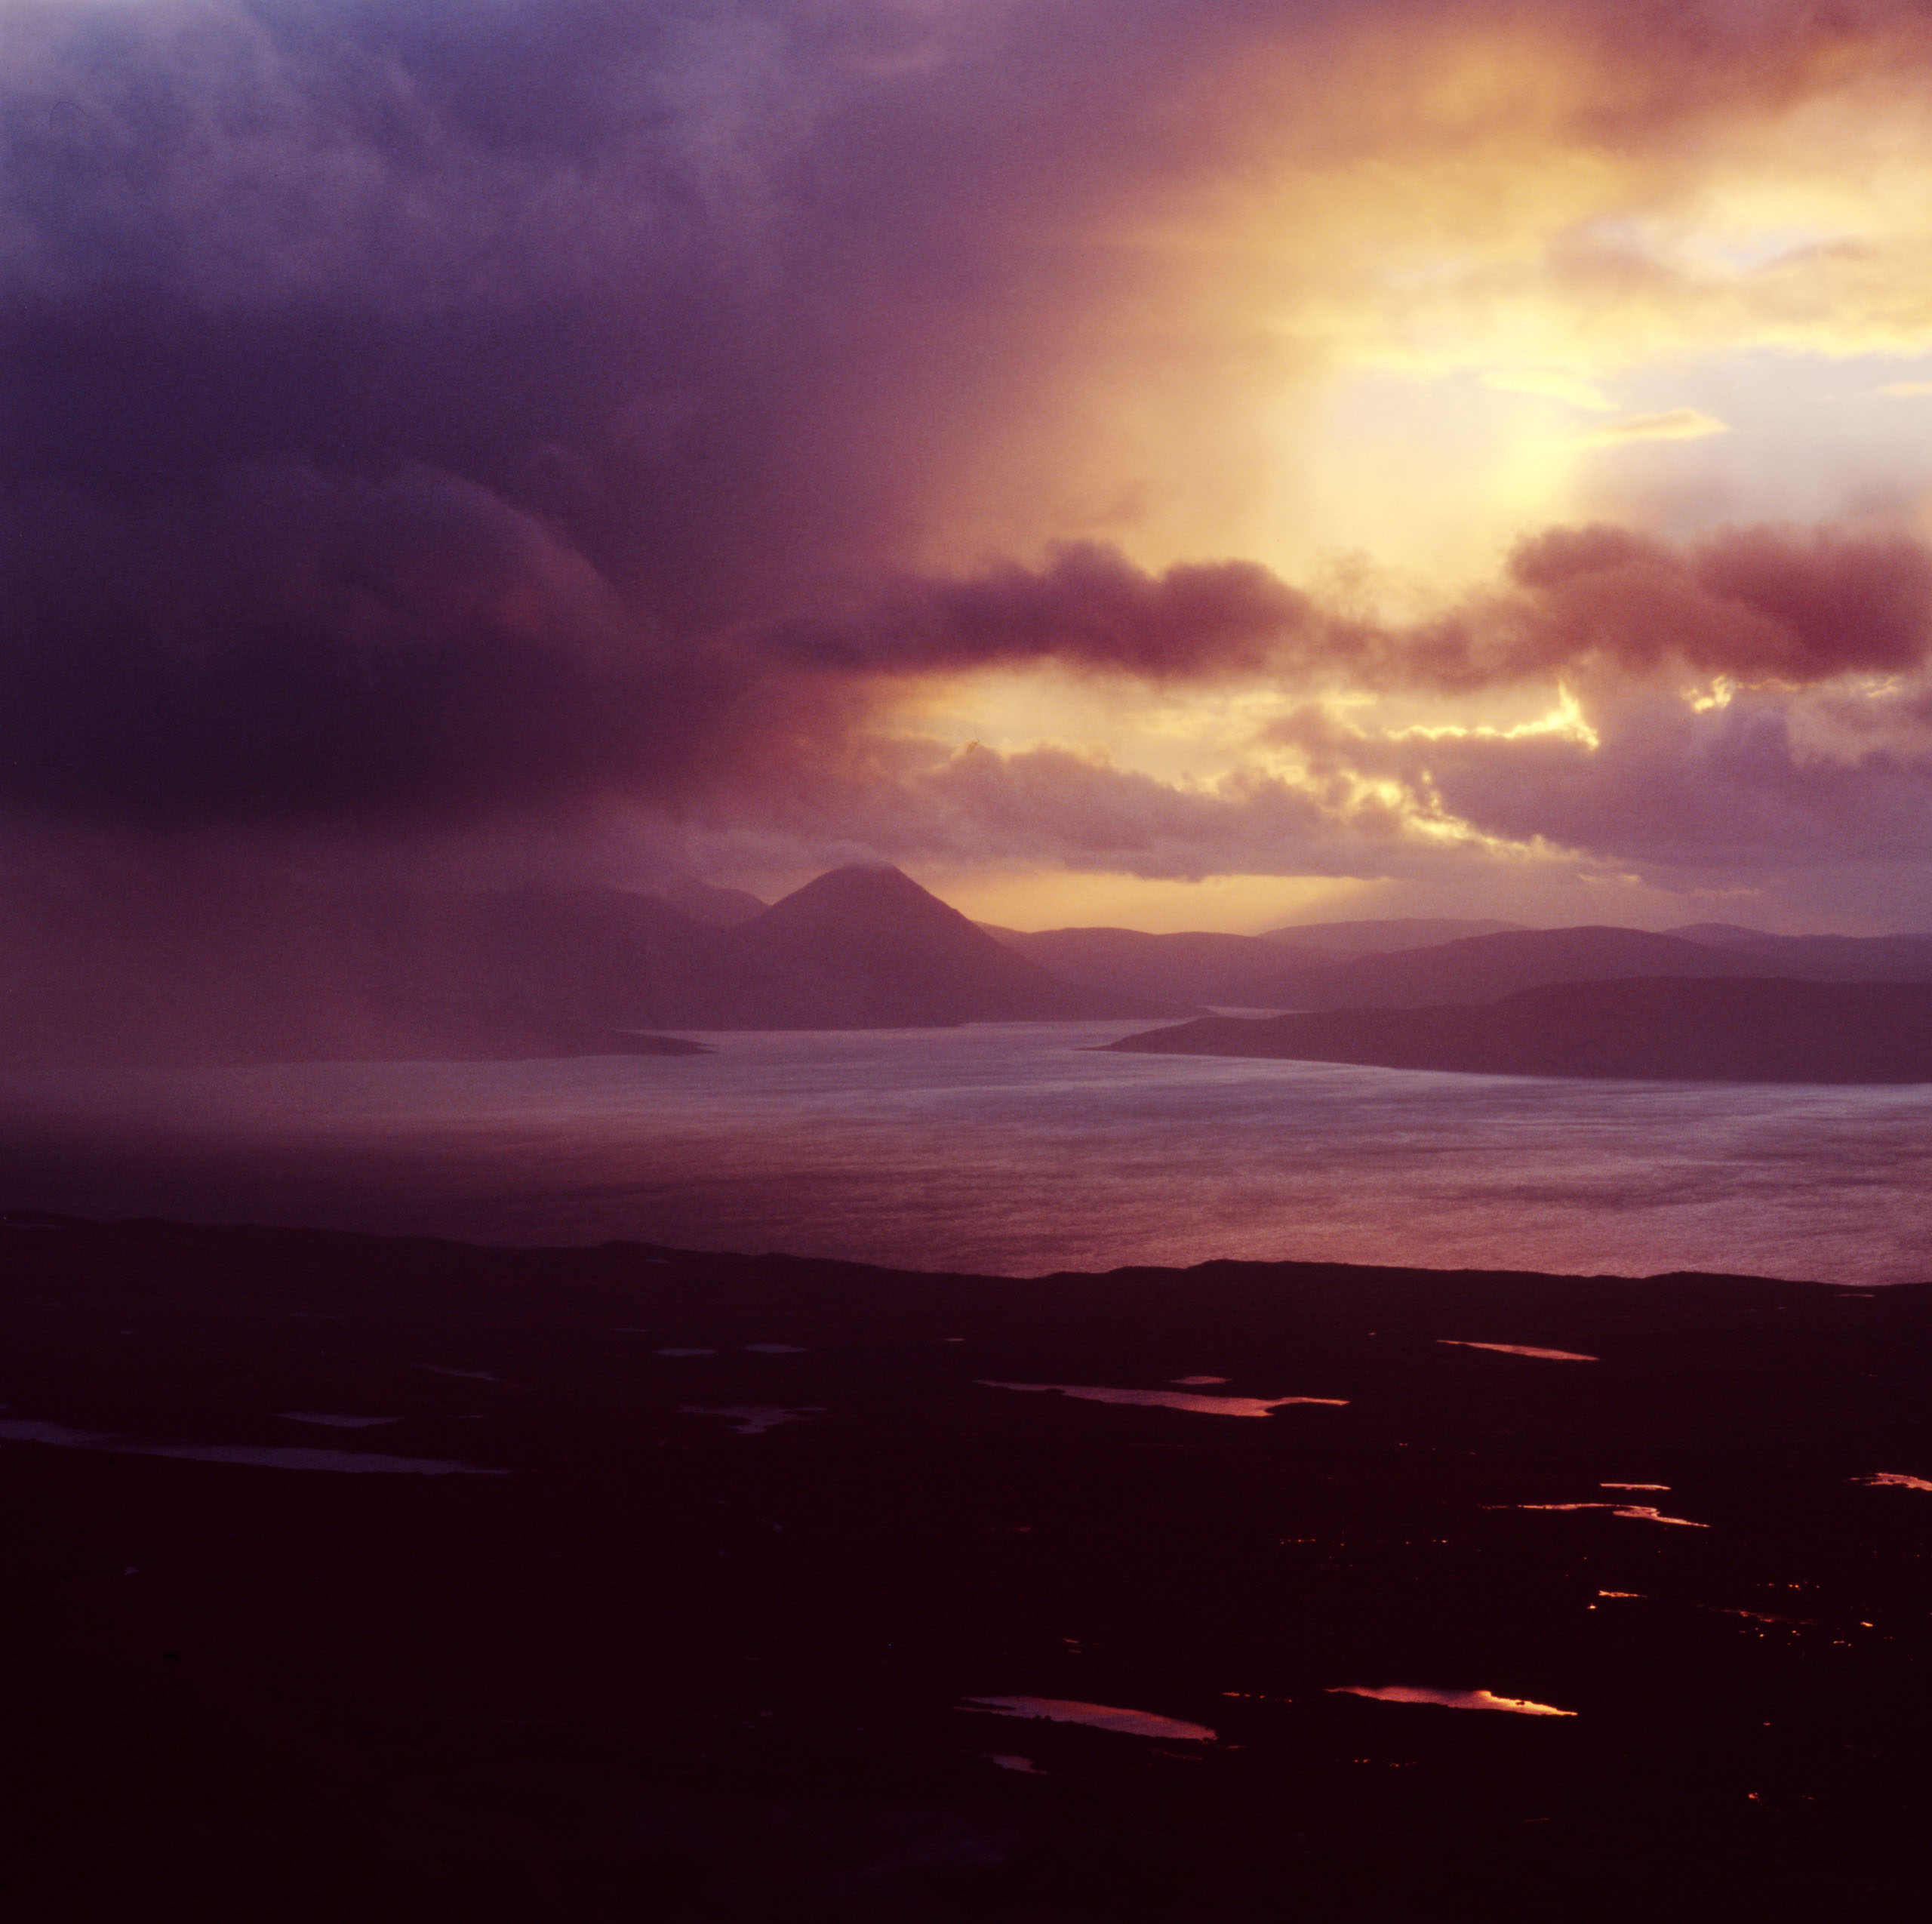 An Autumnal squall passes over the sea to Skye viewed from the Applecross estate, owned by the Applecross trust which is a charity thats runs the 26,700 hectares. Photo by Kieran Dodds.